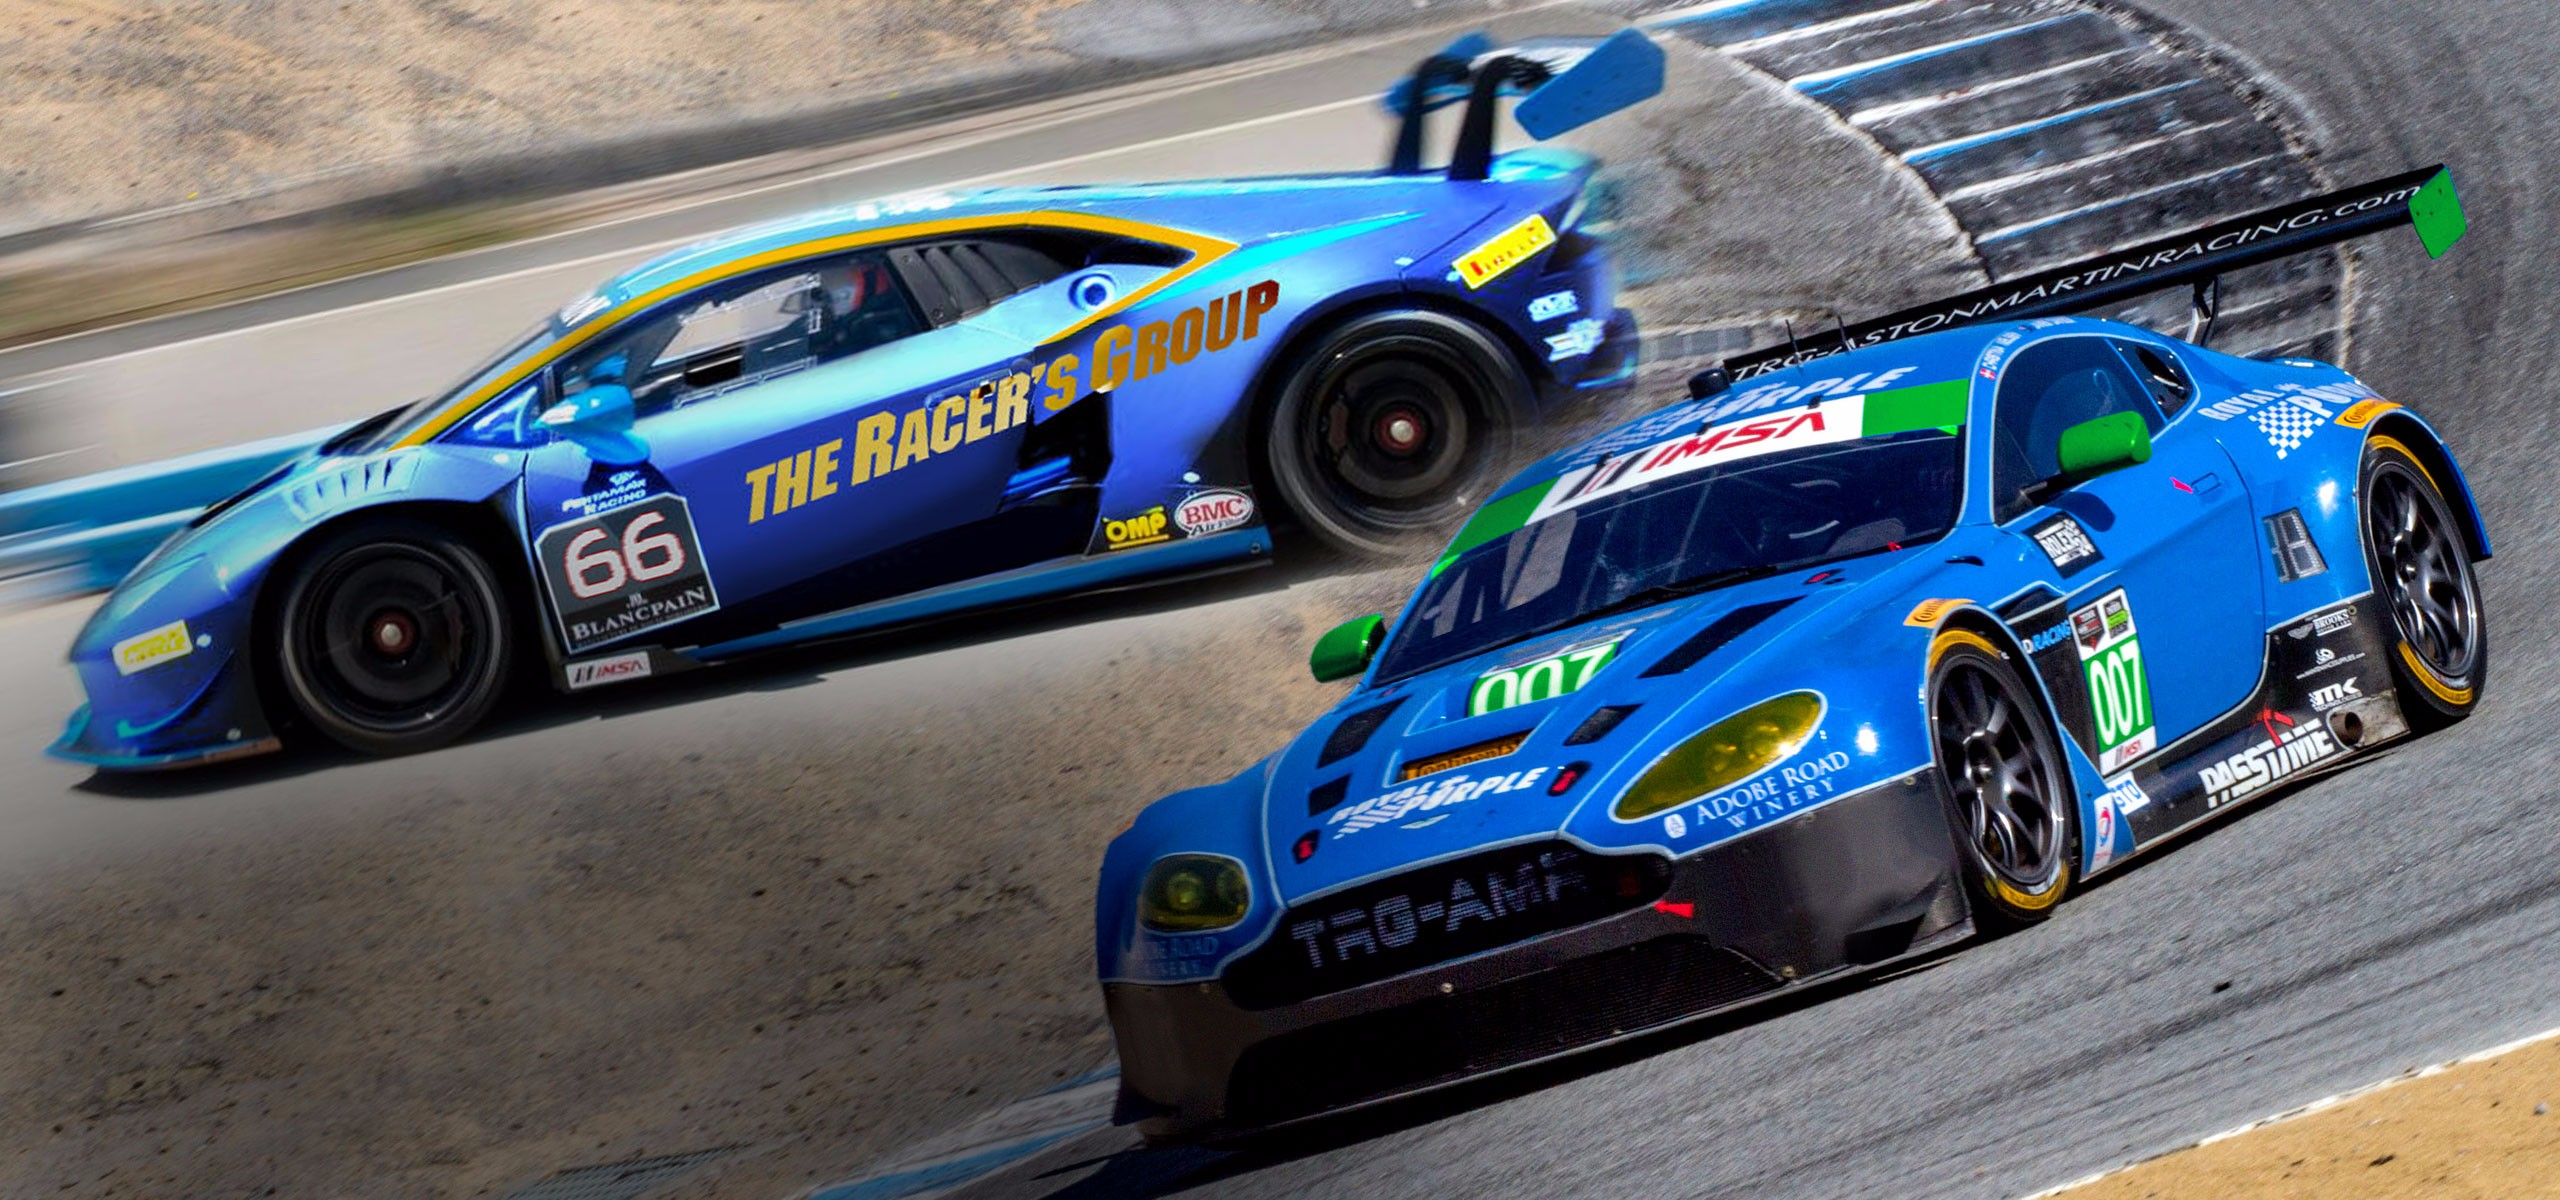 TRG Doubles Down For Laguna Seca With Both Aston Martin and Lamborghini